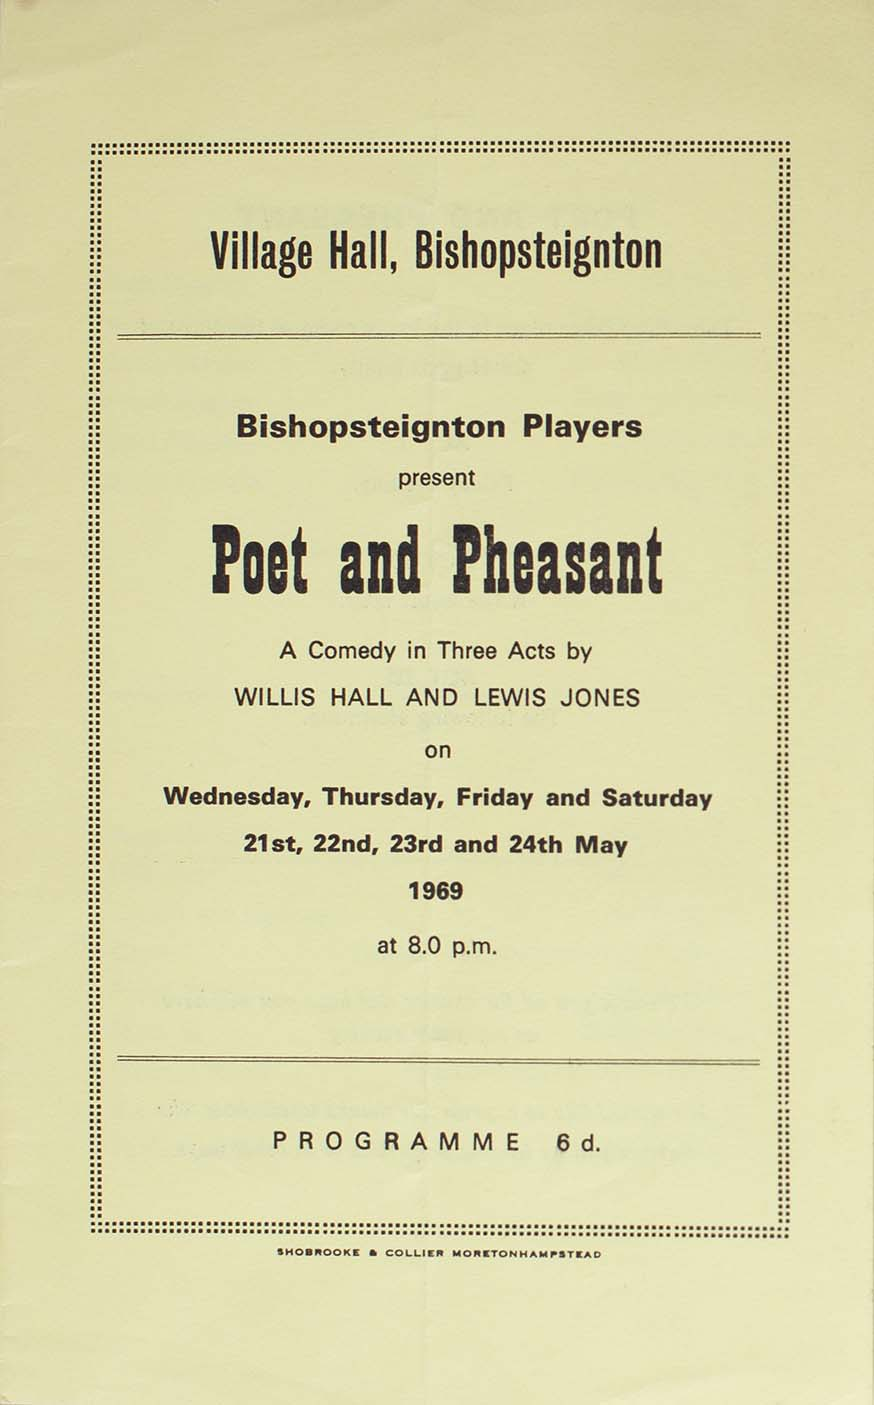 Programme for the play 'Poet and Pheasant' presented by the Bishopsteignton Players front